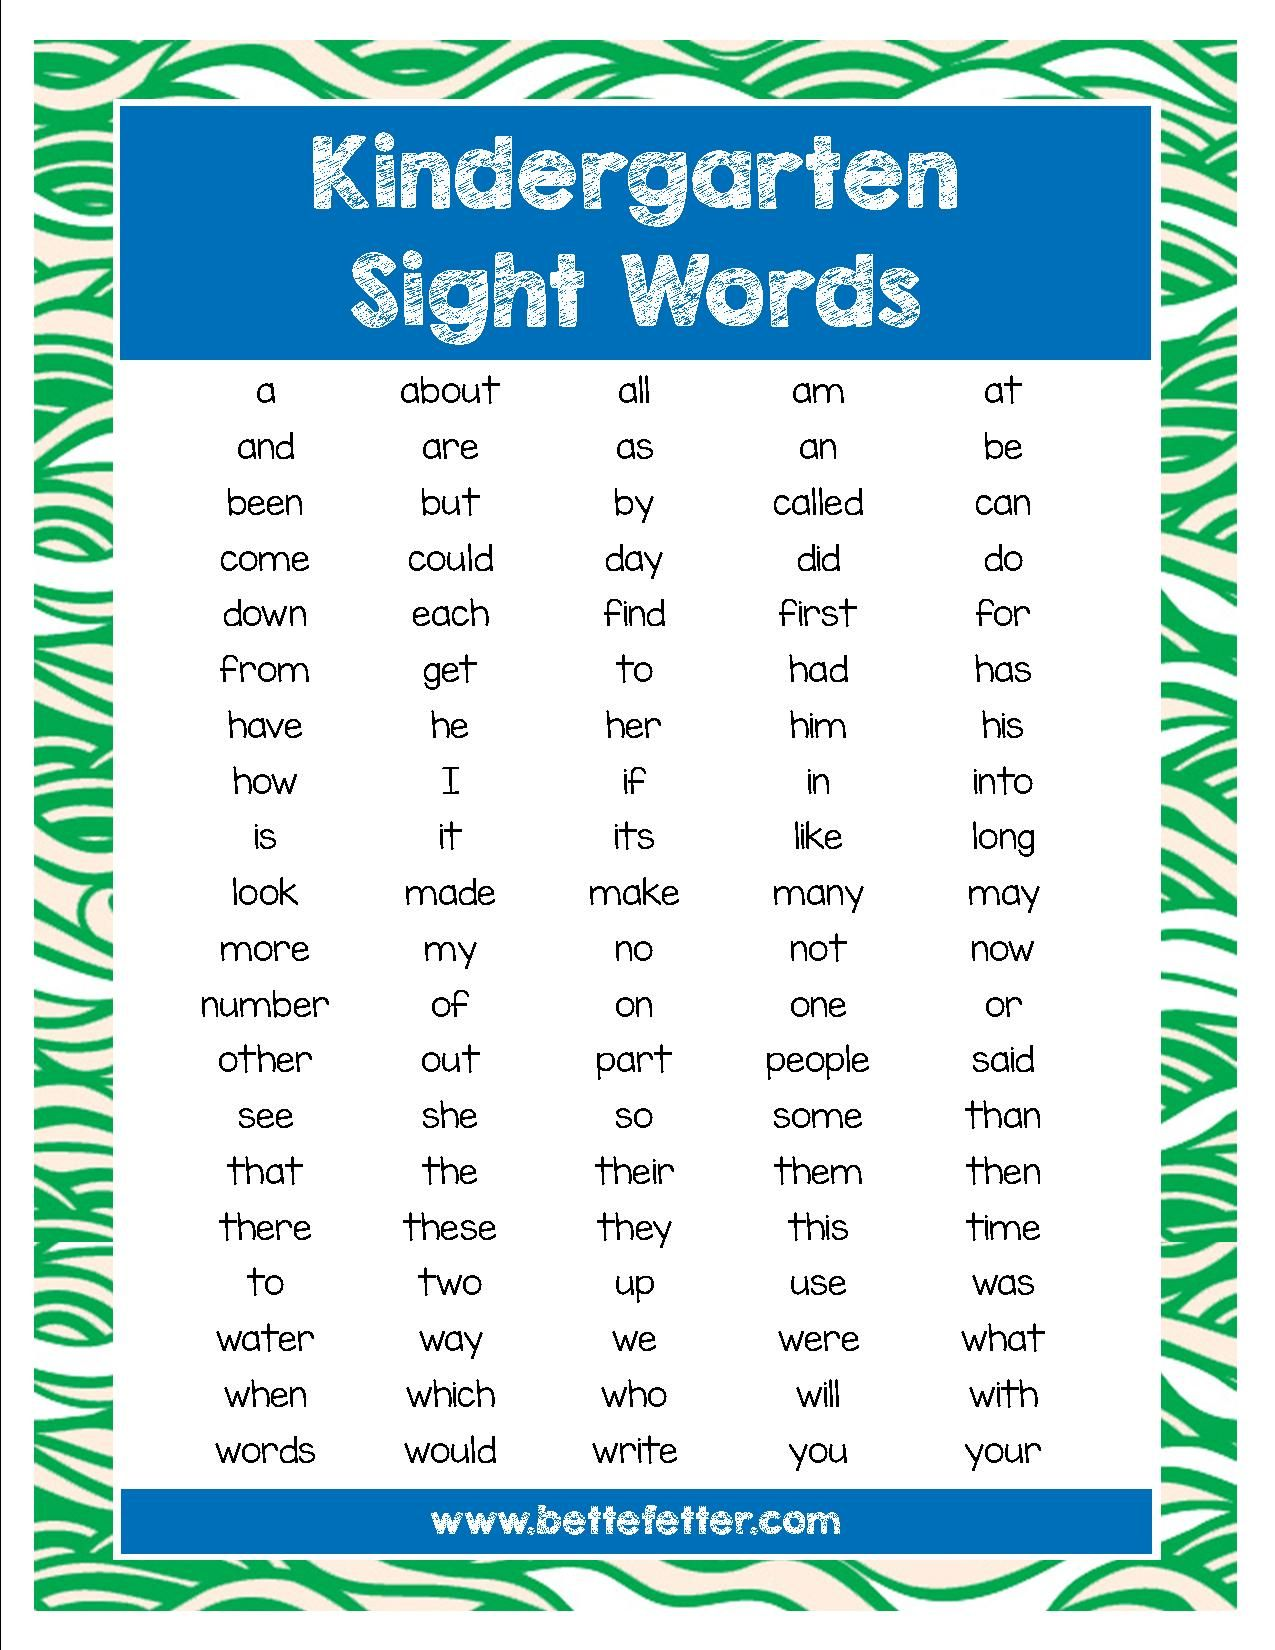 100 Sight Words Your Kindergartner Or First Grader Should